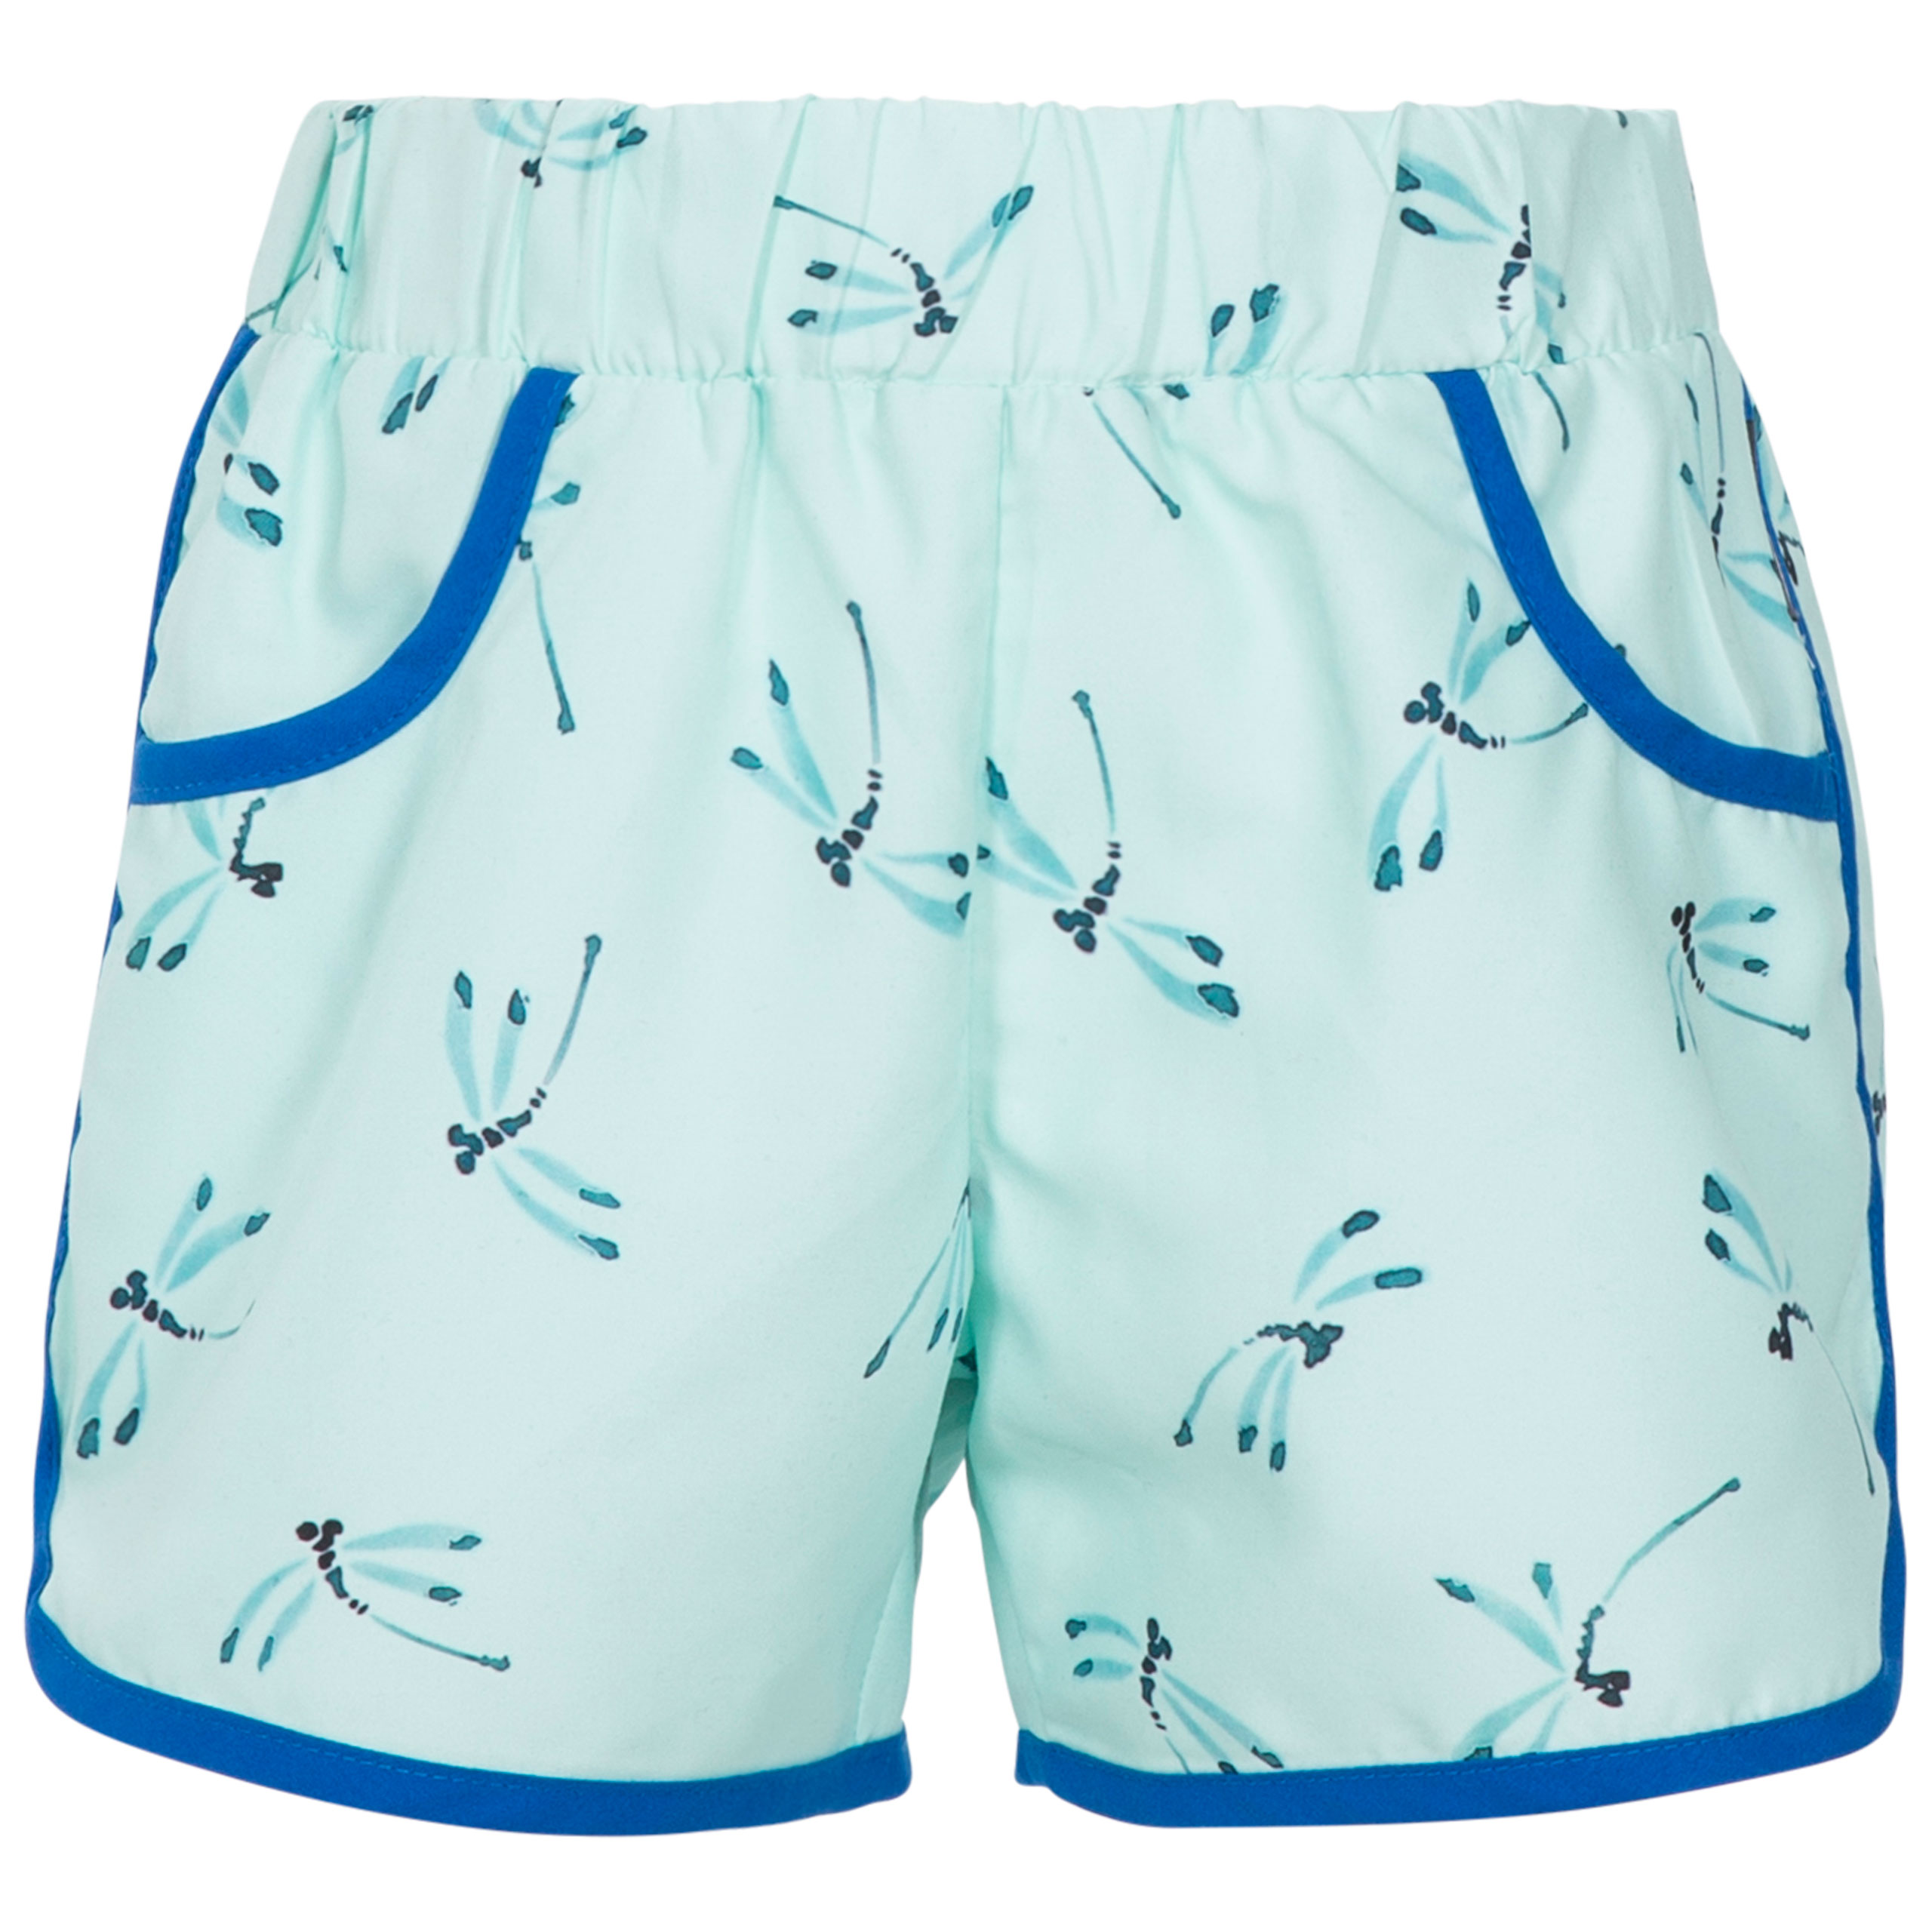 Stunned Kids Board Shorts